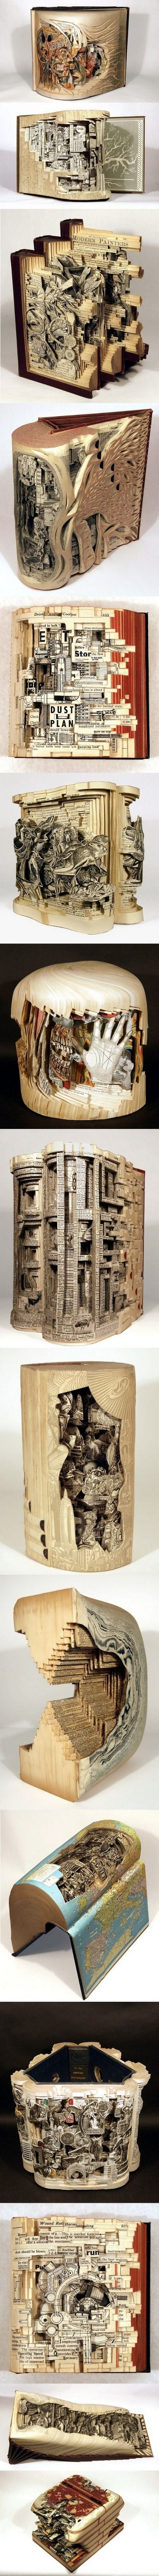 carving_book_art08